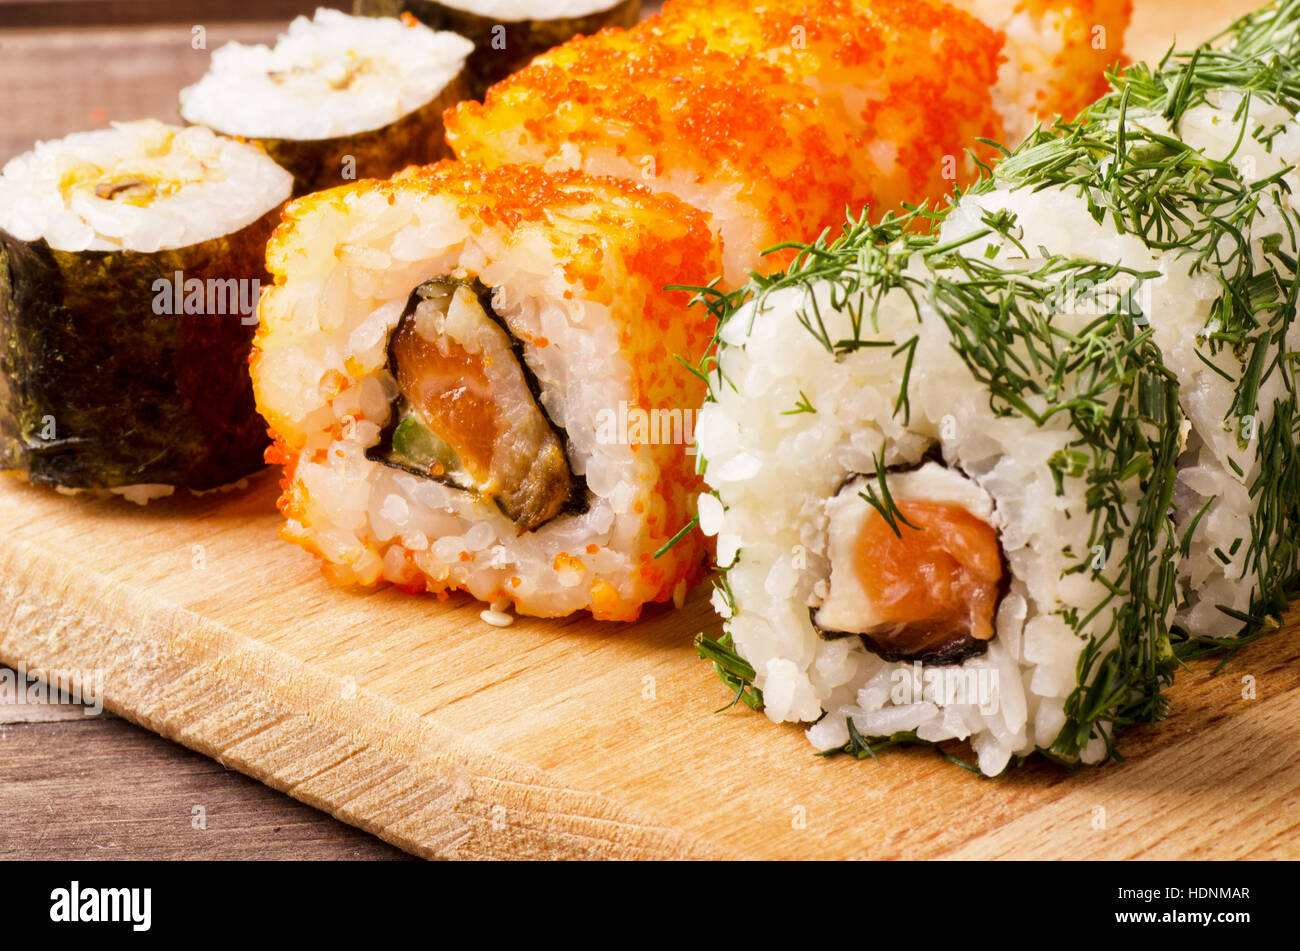 Japanese seafood sushi roll set on a cutting board - Stock Image